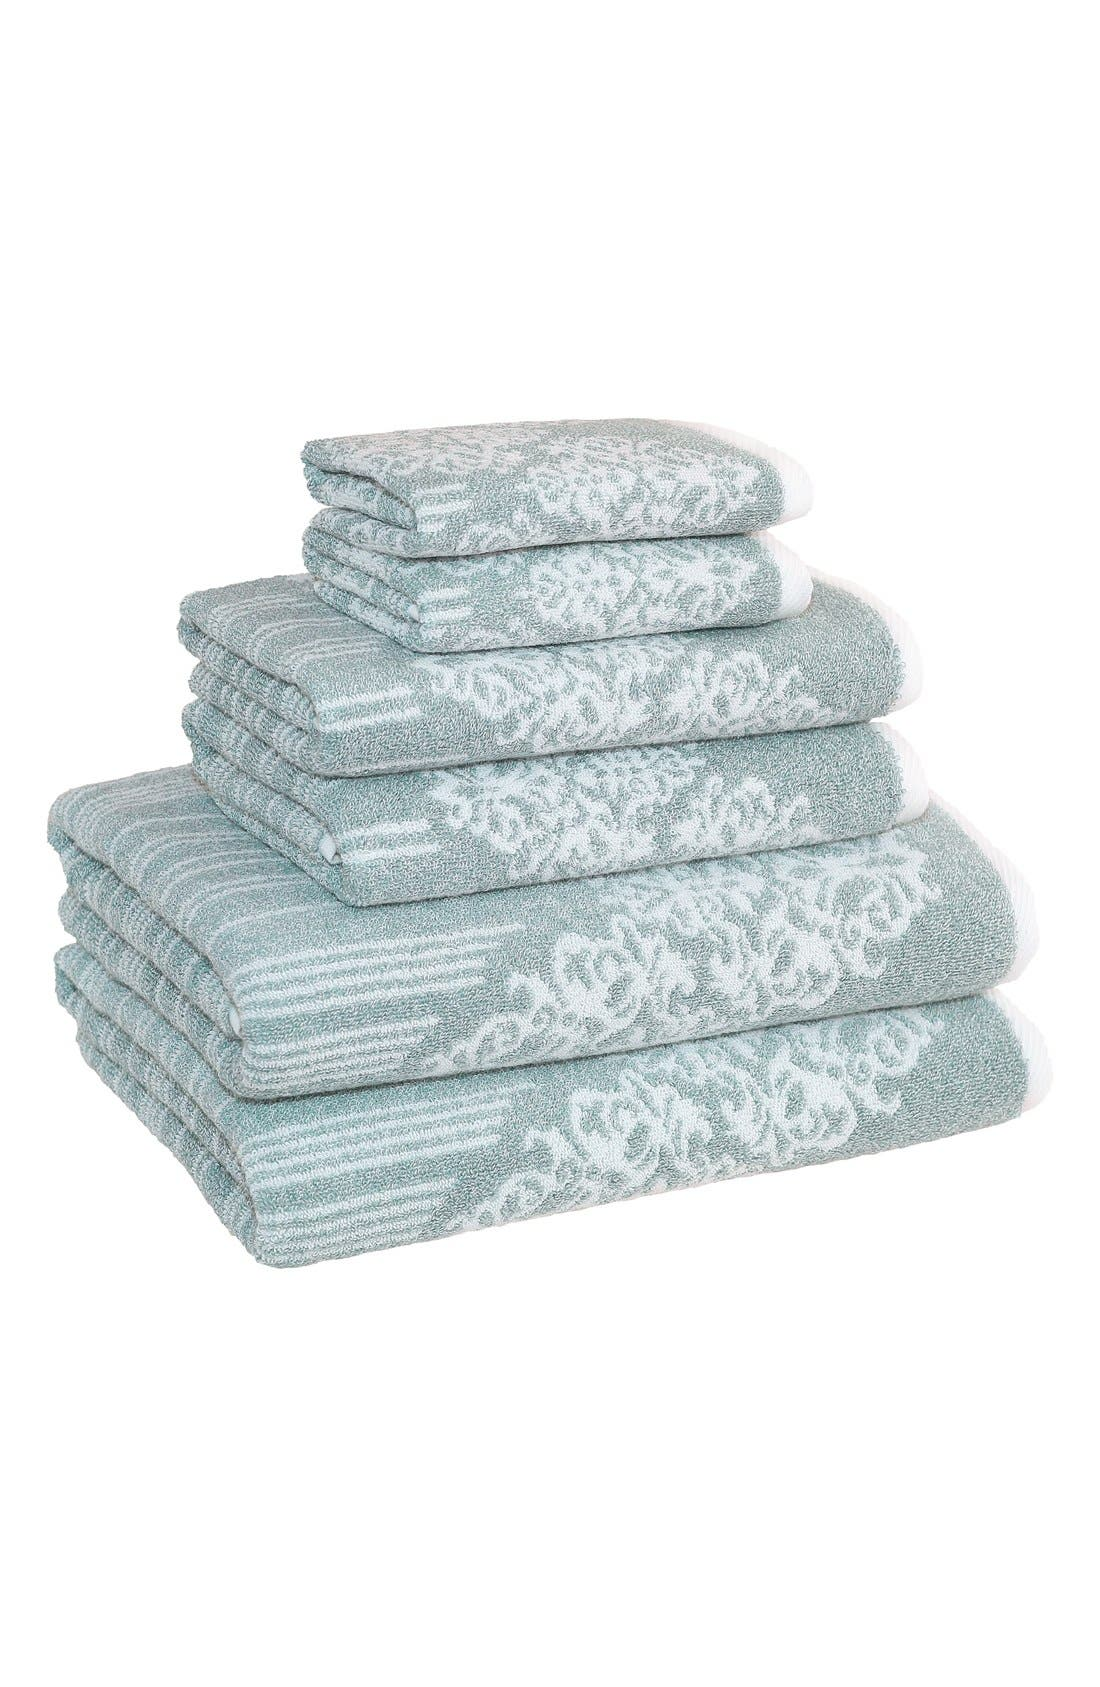 Linum 'Gioia' Bath Towels, Hand Towels & Washcloths,                         Main,                         color, 440